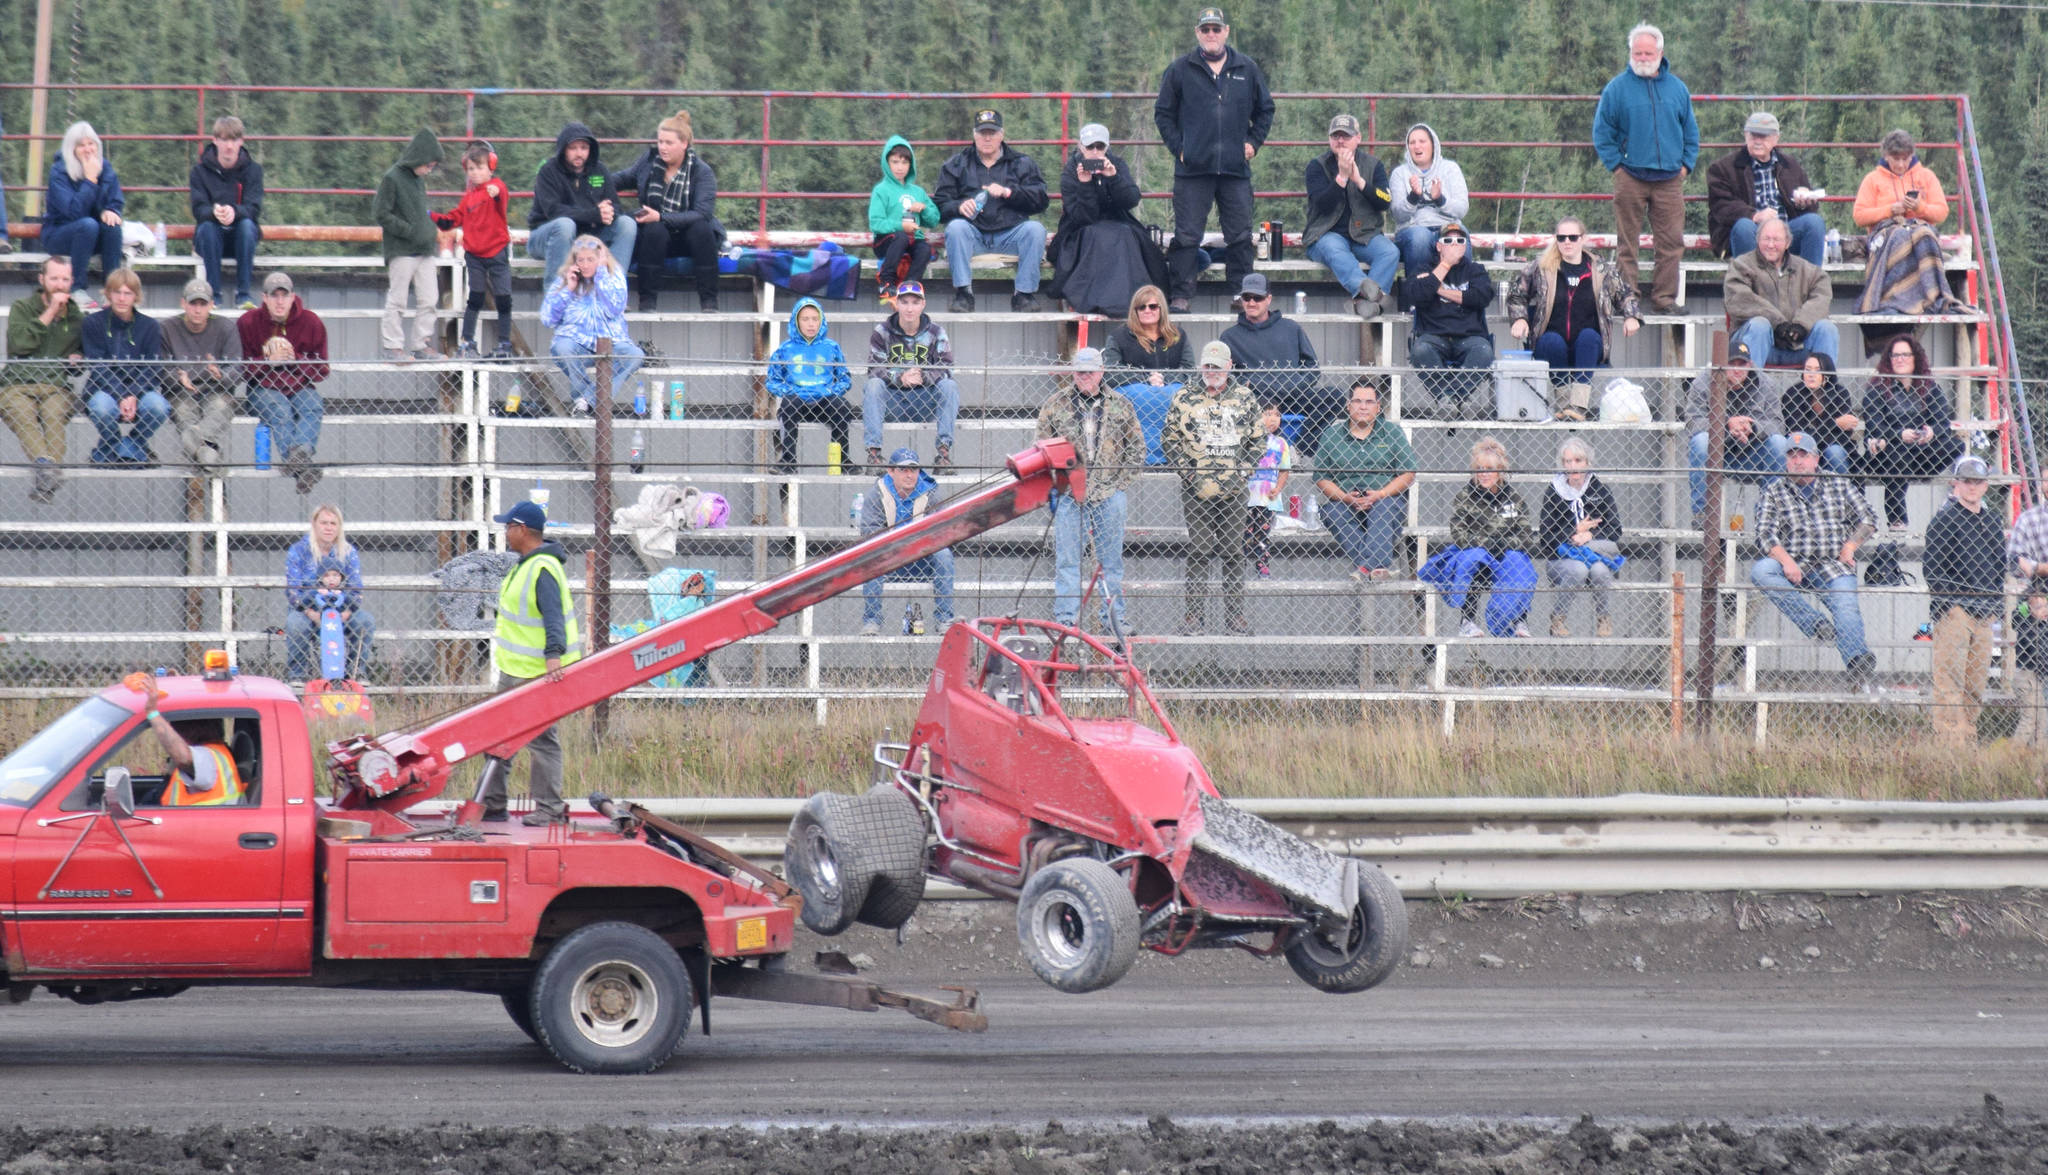 The crowd of race fans watch a tow truck pull the wrecked Sprint Car of John Mellish away Friday, Sept. 6, 2019, at Twin City Raceway in Kenai, Alaska. Mellish was unhurt in the incident. (Photo by Joey Klecka/Peninsula Clarion)